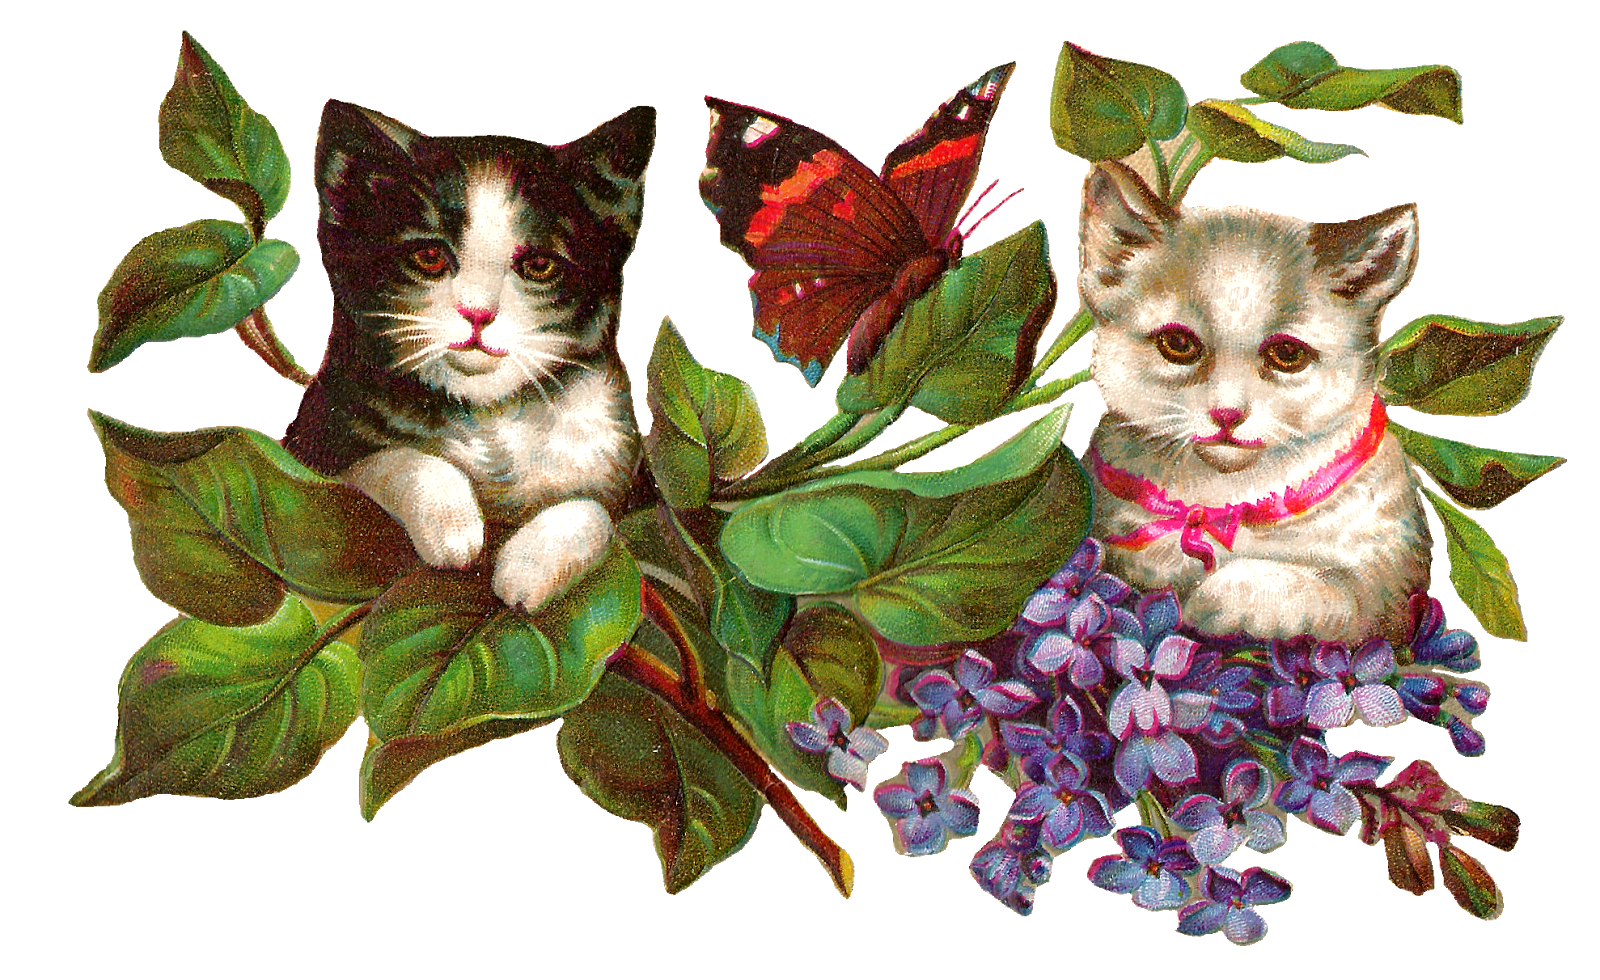 Cat and butterfly clipart banner freeuse library Antique Images: Vintage Cat Image Wisteria Flowers Butterfly Clip Art banner freeuse library